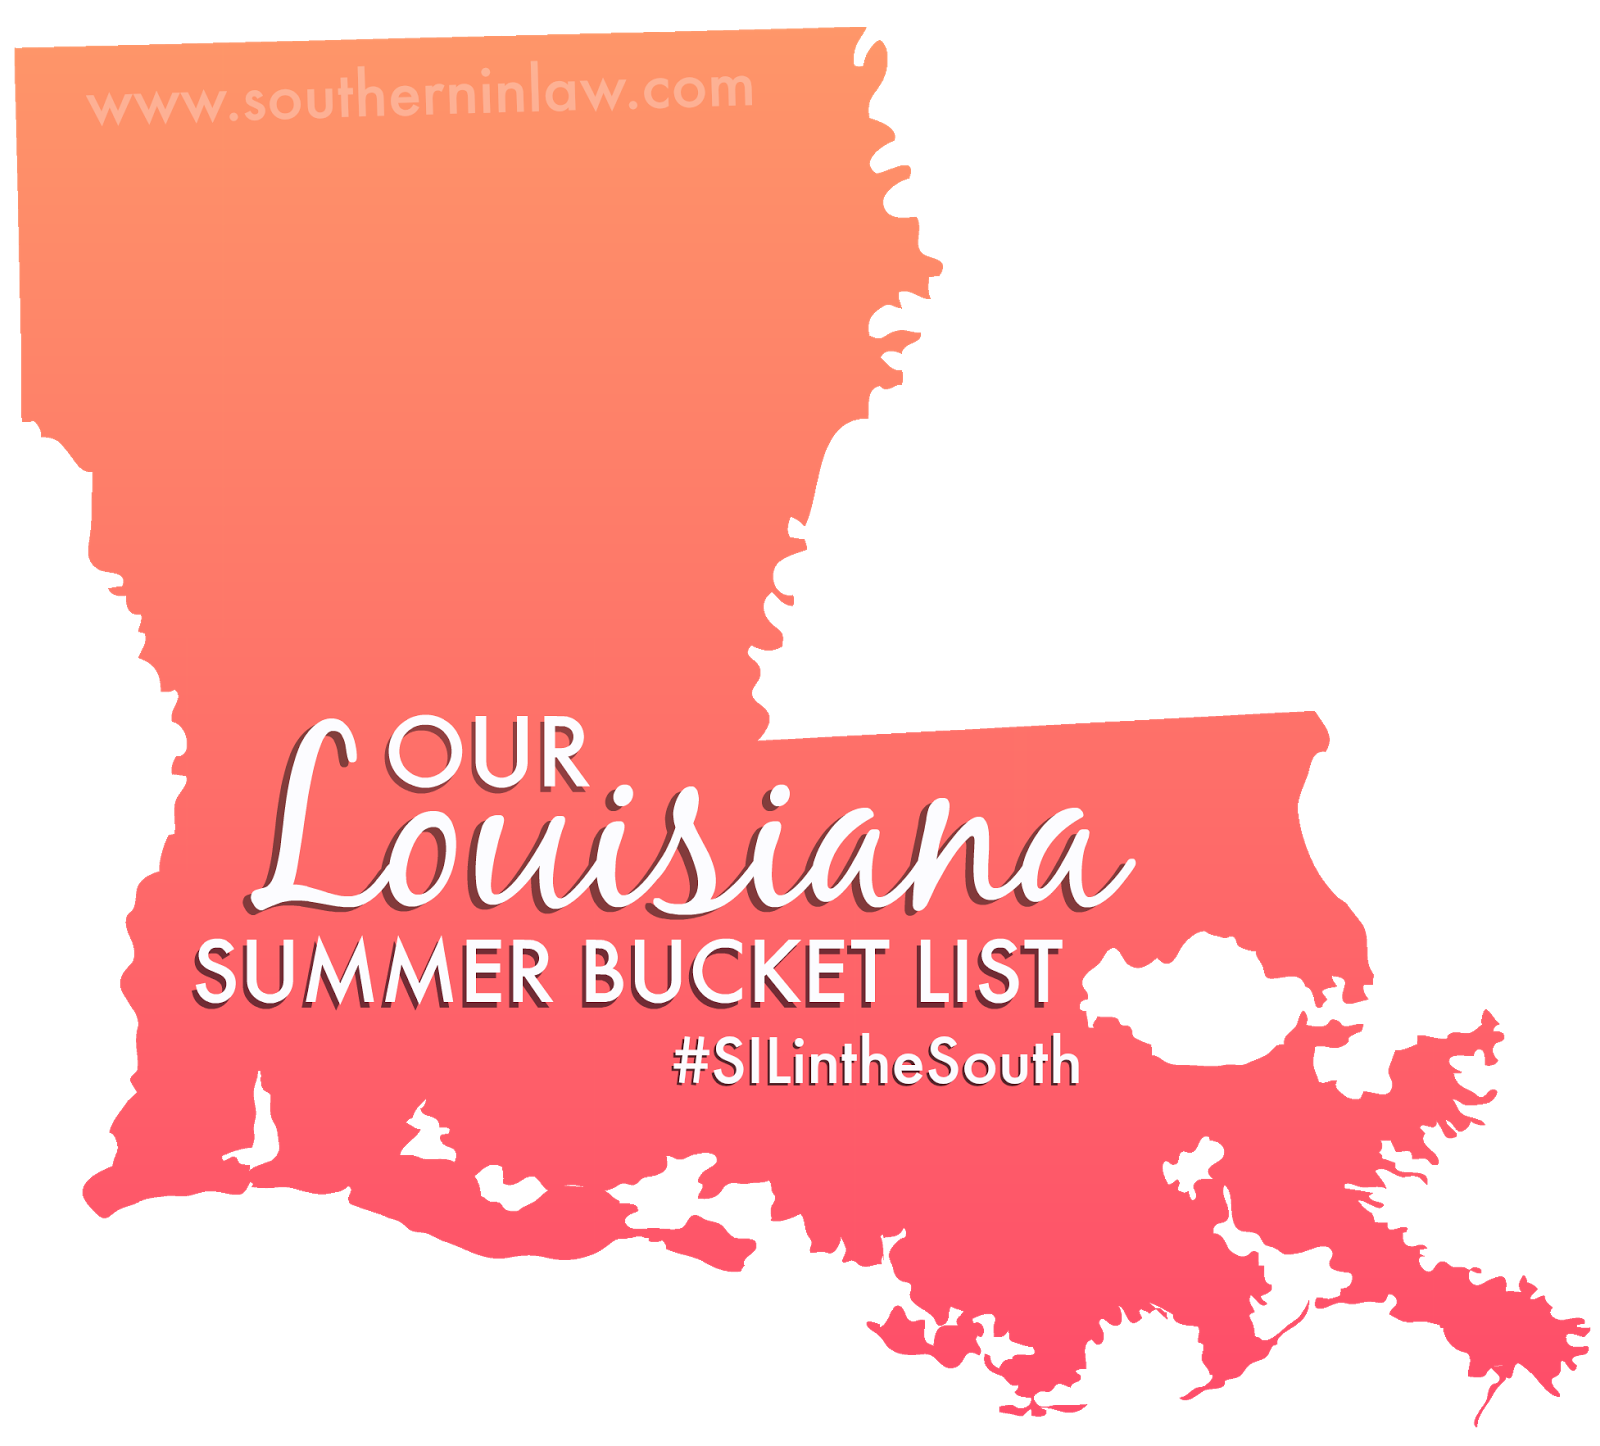 #SILintheSouth Louisiana Summer Bucket List